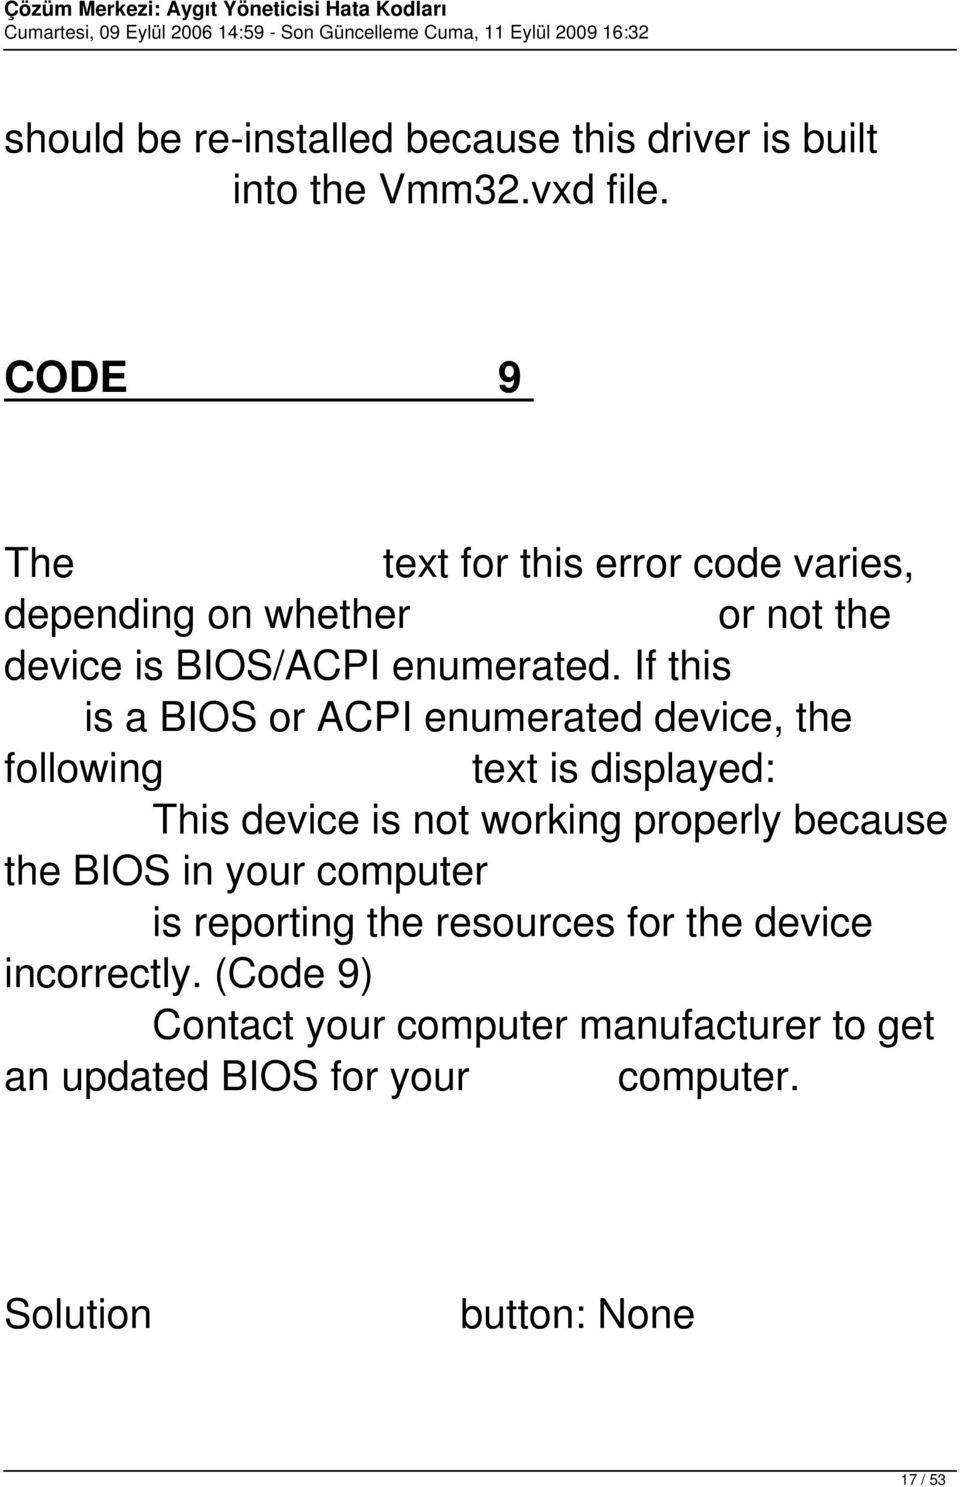 If this is a BIOS or ACPI enumerated device, the following text is displayed: This device is not working properly because the